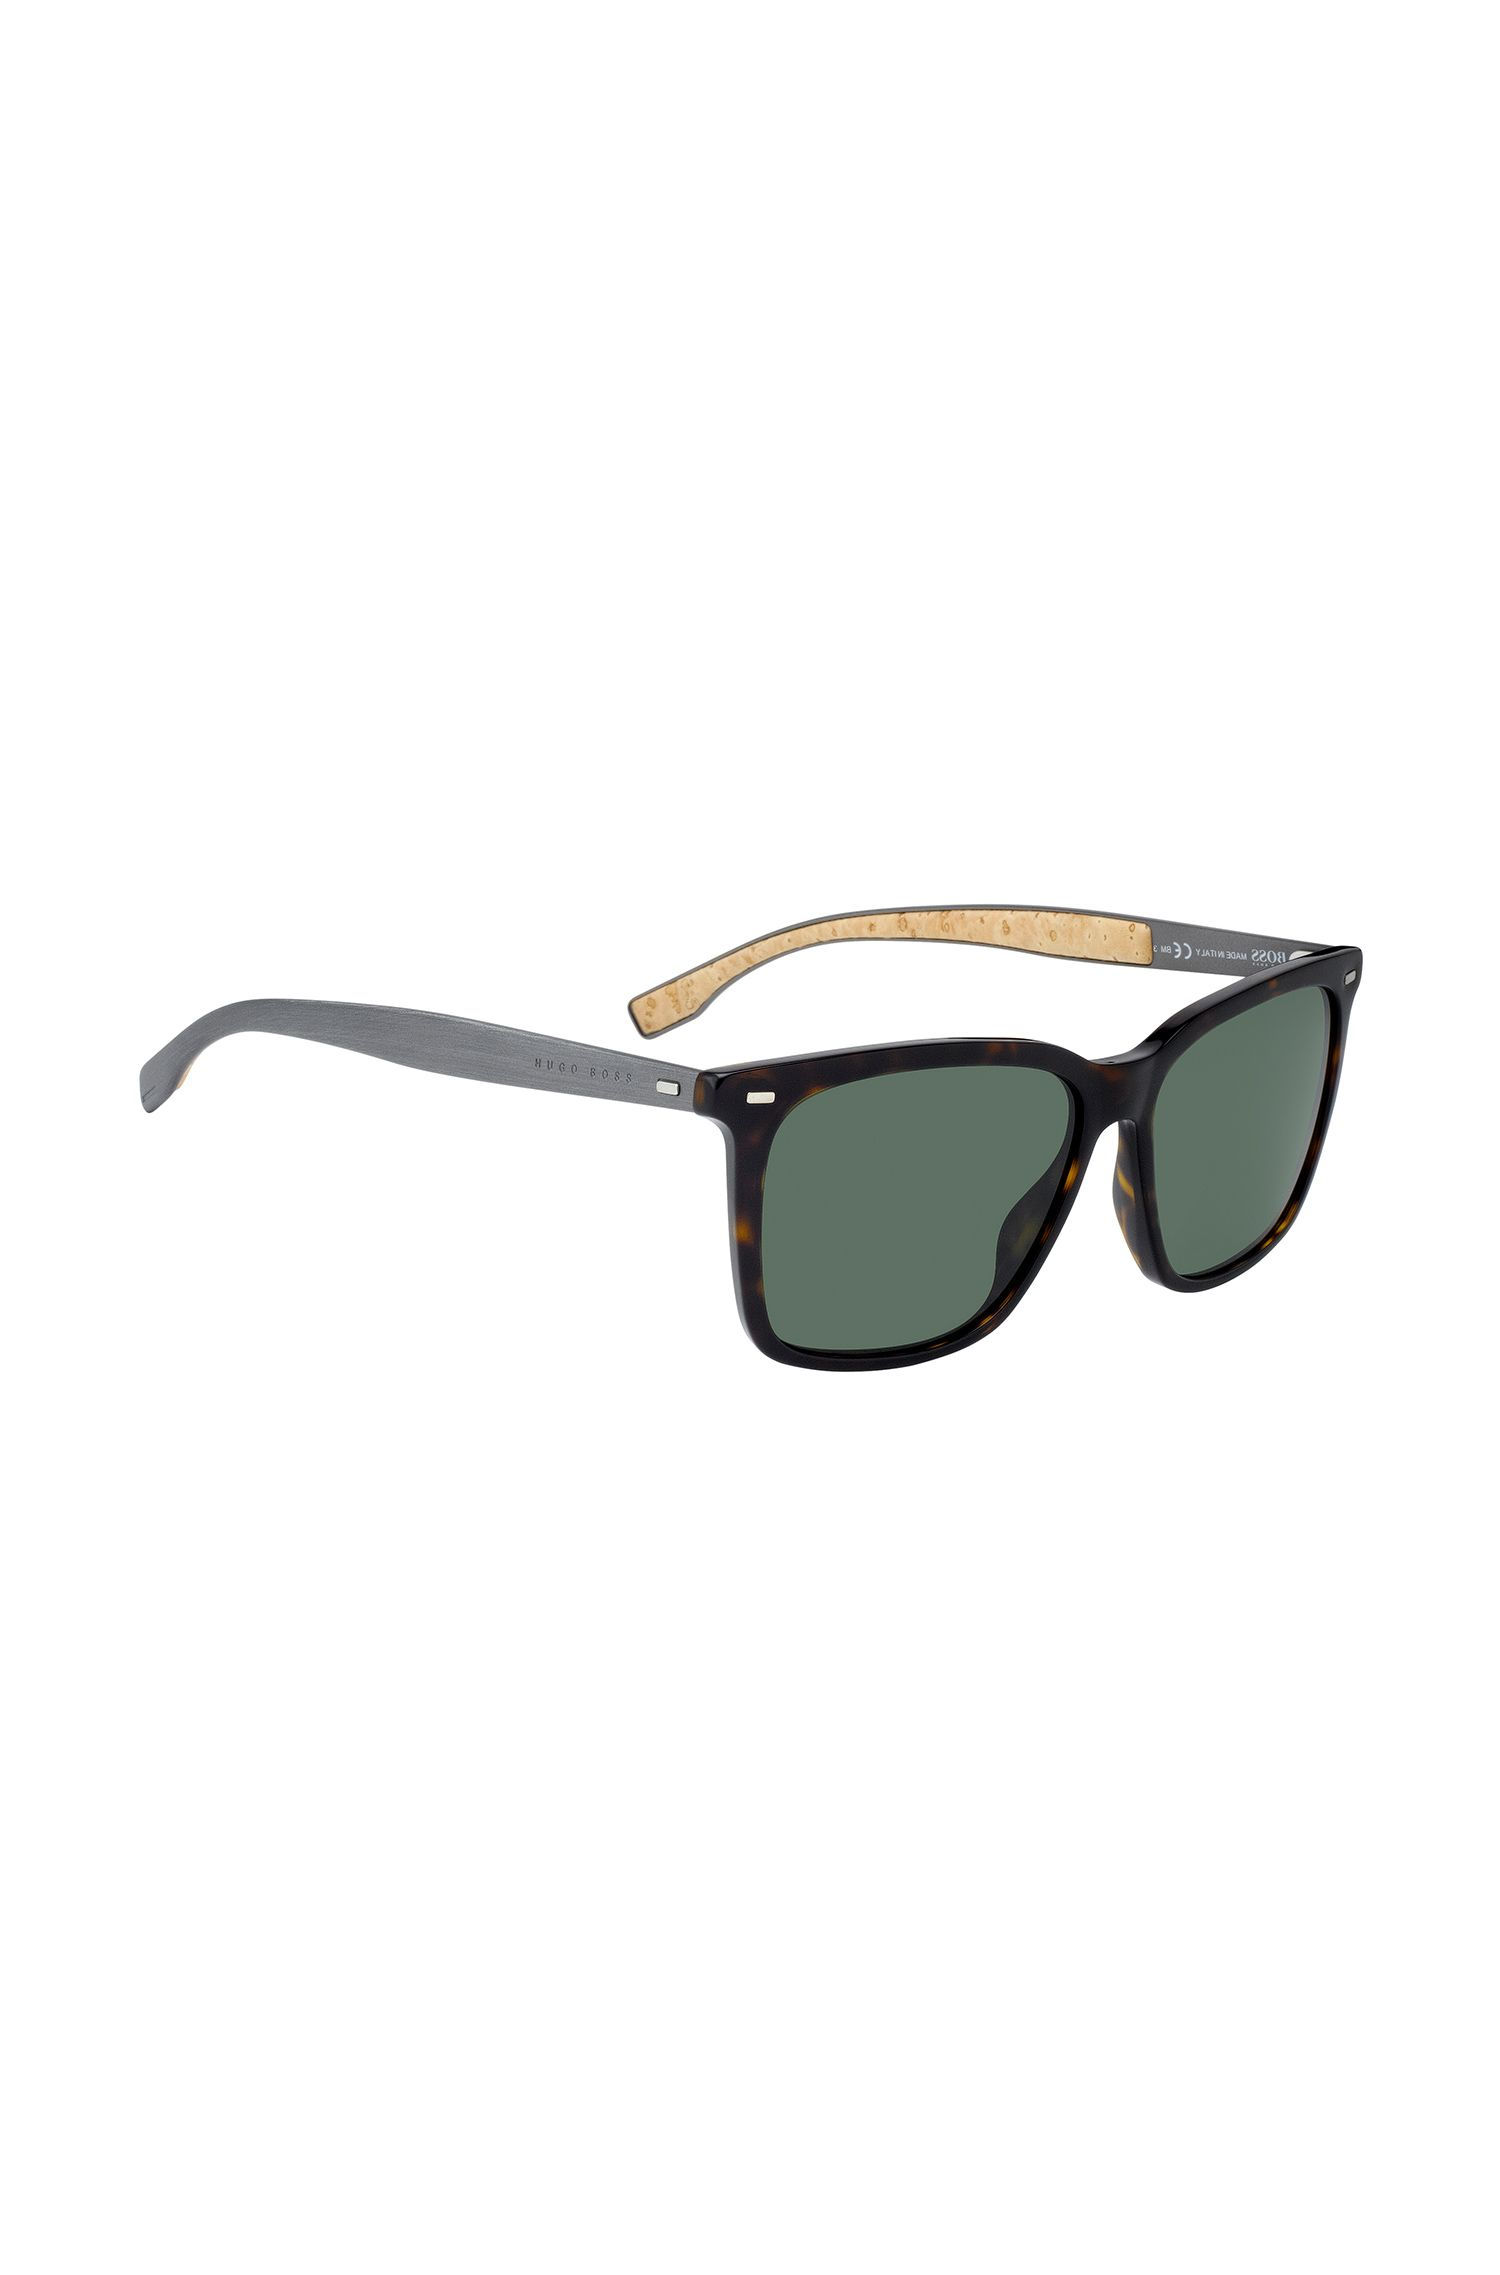 Tortoiseshell Acetate Rectangular Sunglasses | BOSS 08883S